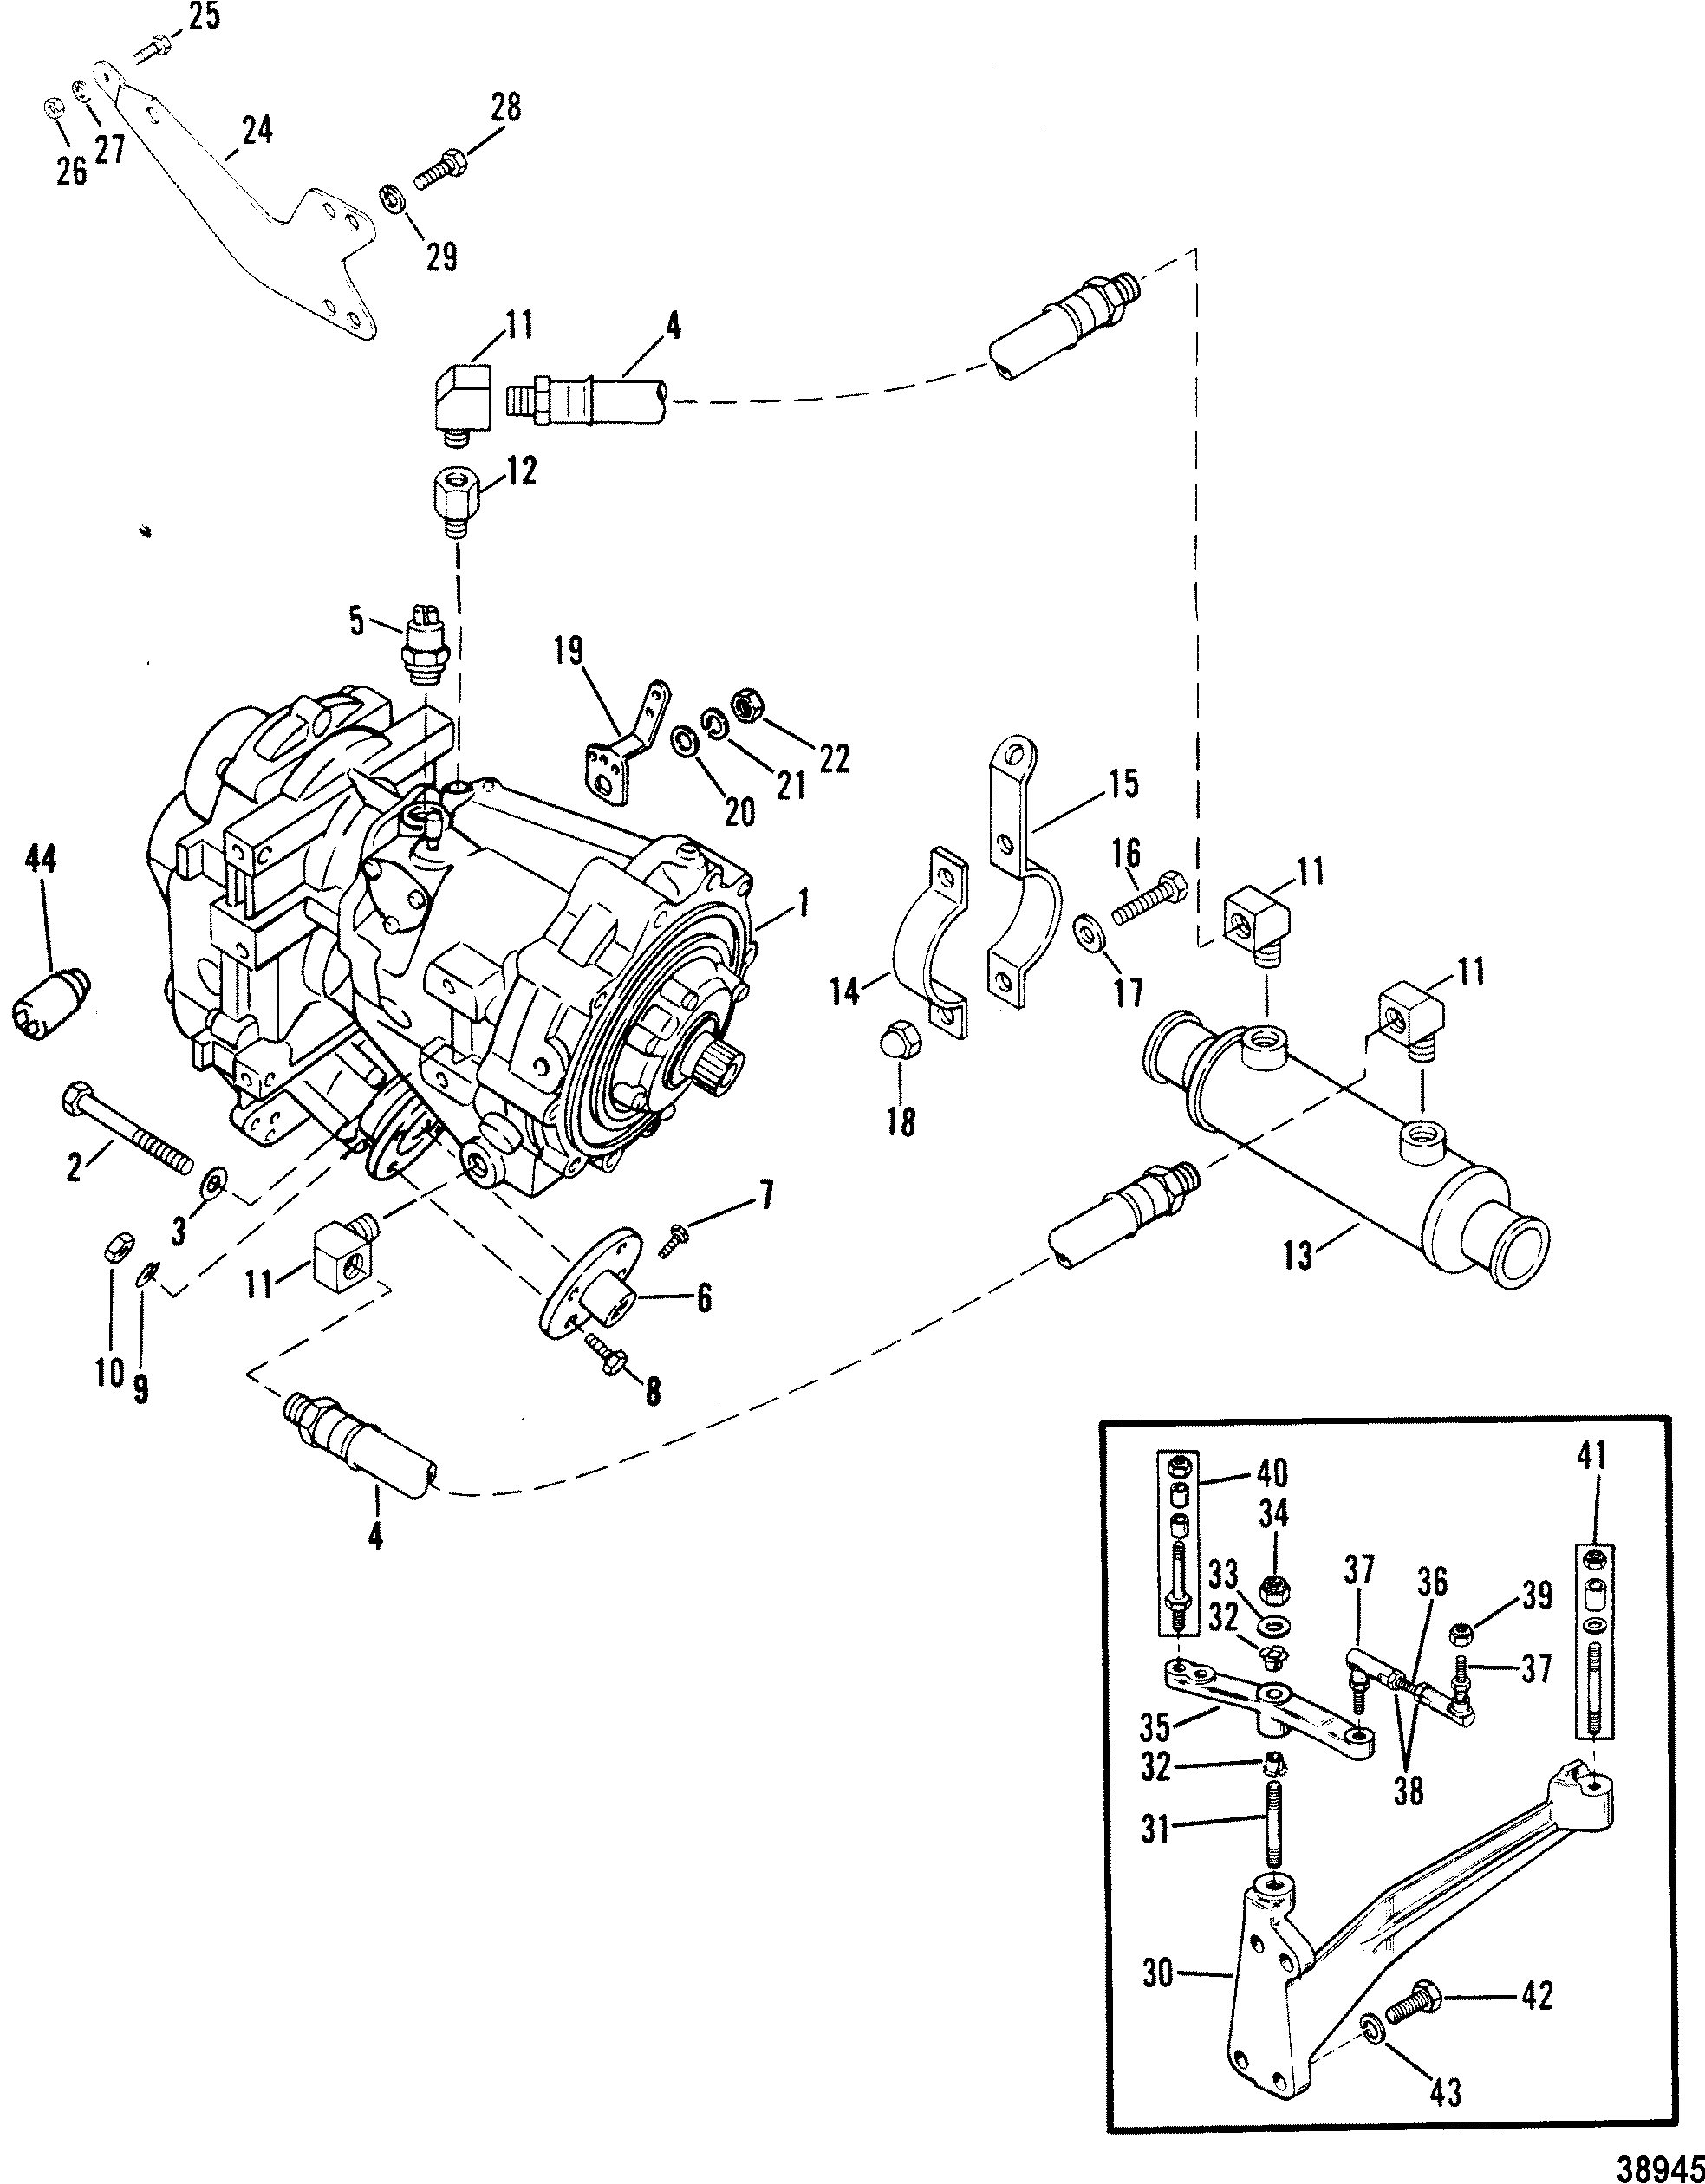 Transmission And Related Parts V Drive For Mie 340 H P 7